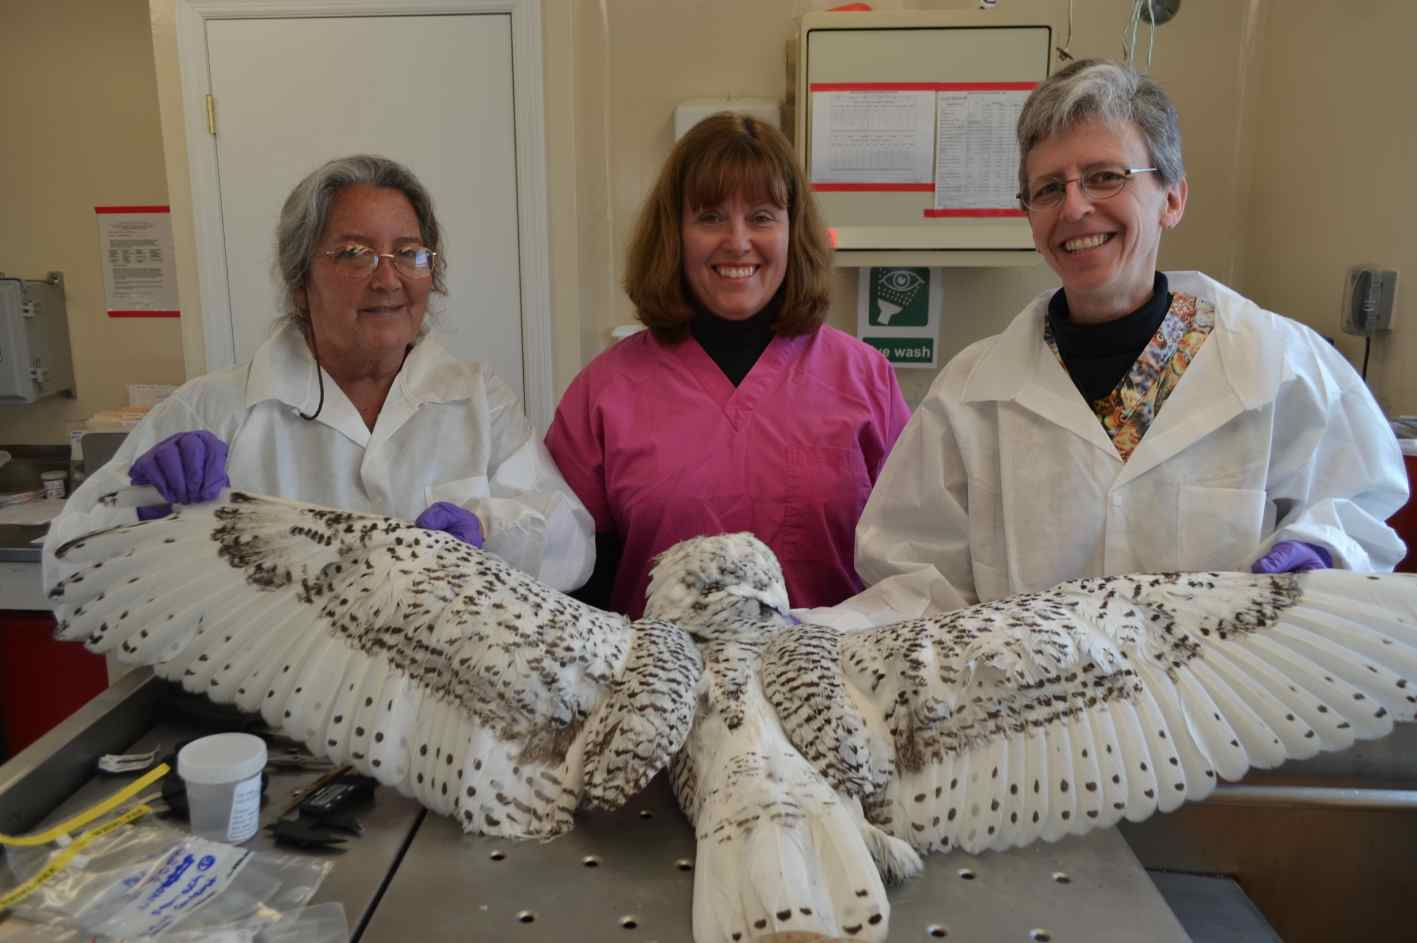 From left, Drs. Cindy Driscoll, Sherrill Davison and Erica Miller prepare to perform a necropsy on a snowy owl found dead last winter. Such painstaking exams, along with sophisticated lab work, are revealing the toxins and other dangers snowy owls face.